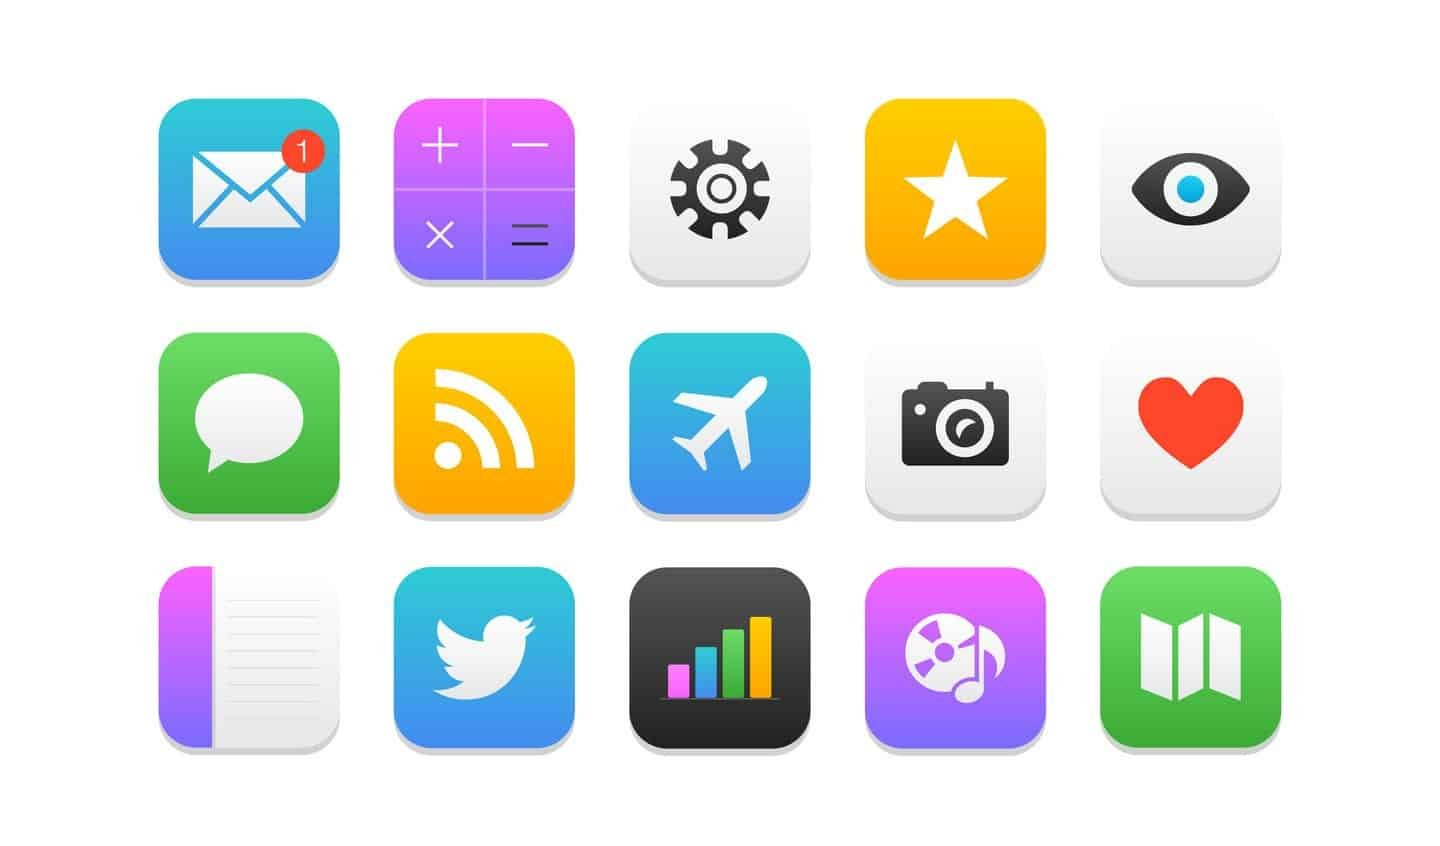 Apple mobile application icons on a screen